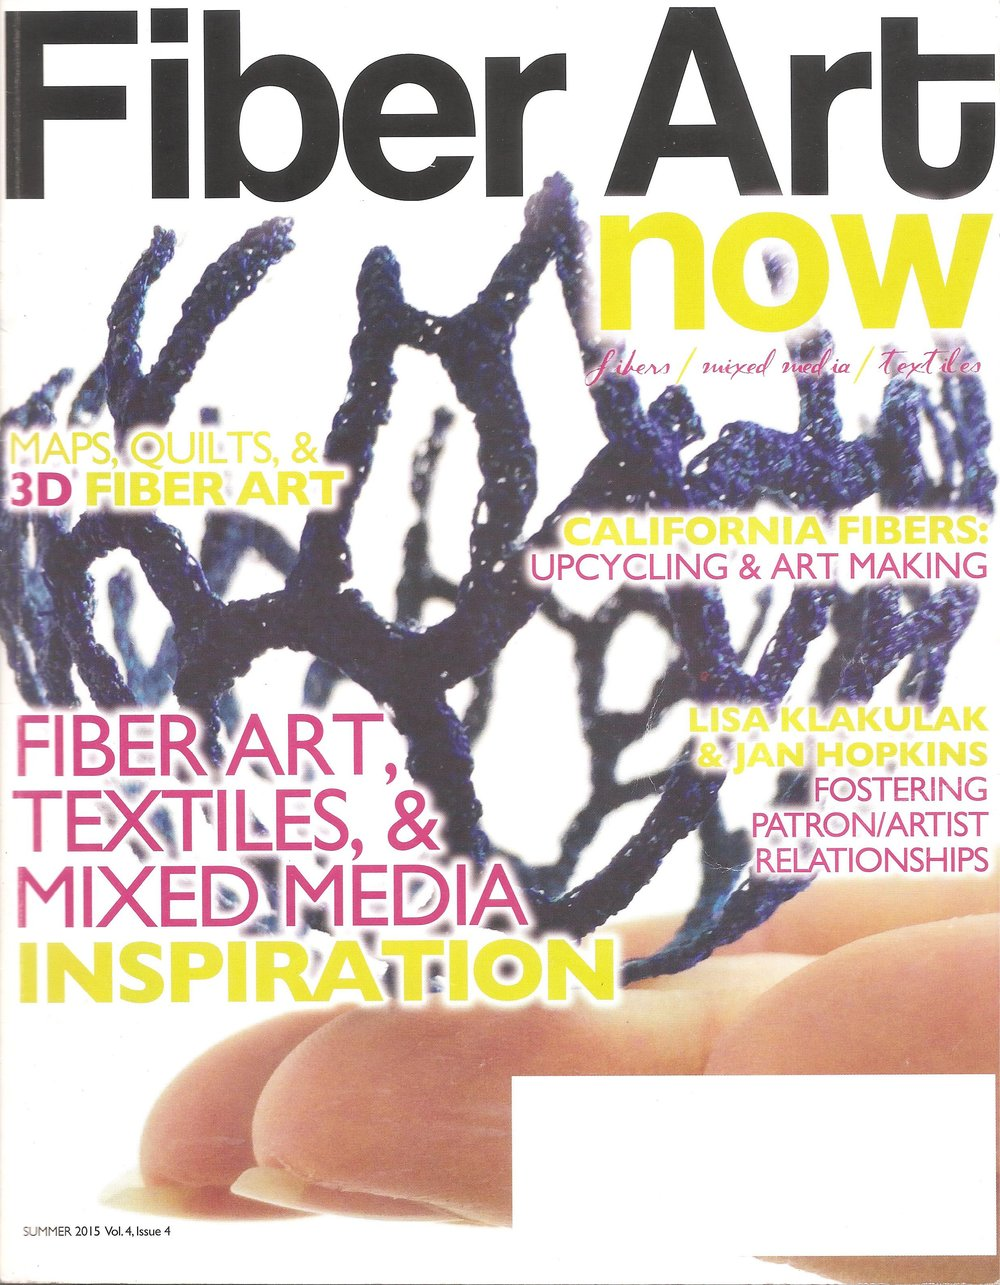 FIBERART now, Article by Genevieve Nordmark   Summer 2015 Vol. 4, Issue 4    STRENGTH & FRAGILITY: Silvia Turbiner's Paper Scupltures